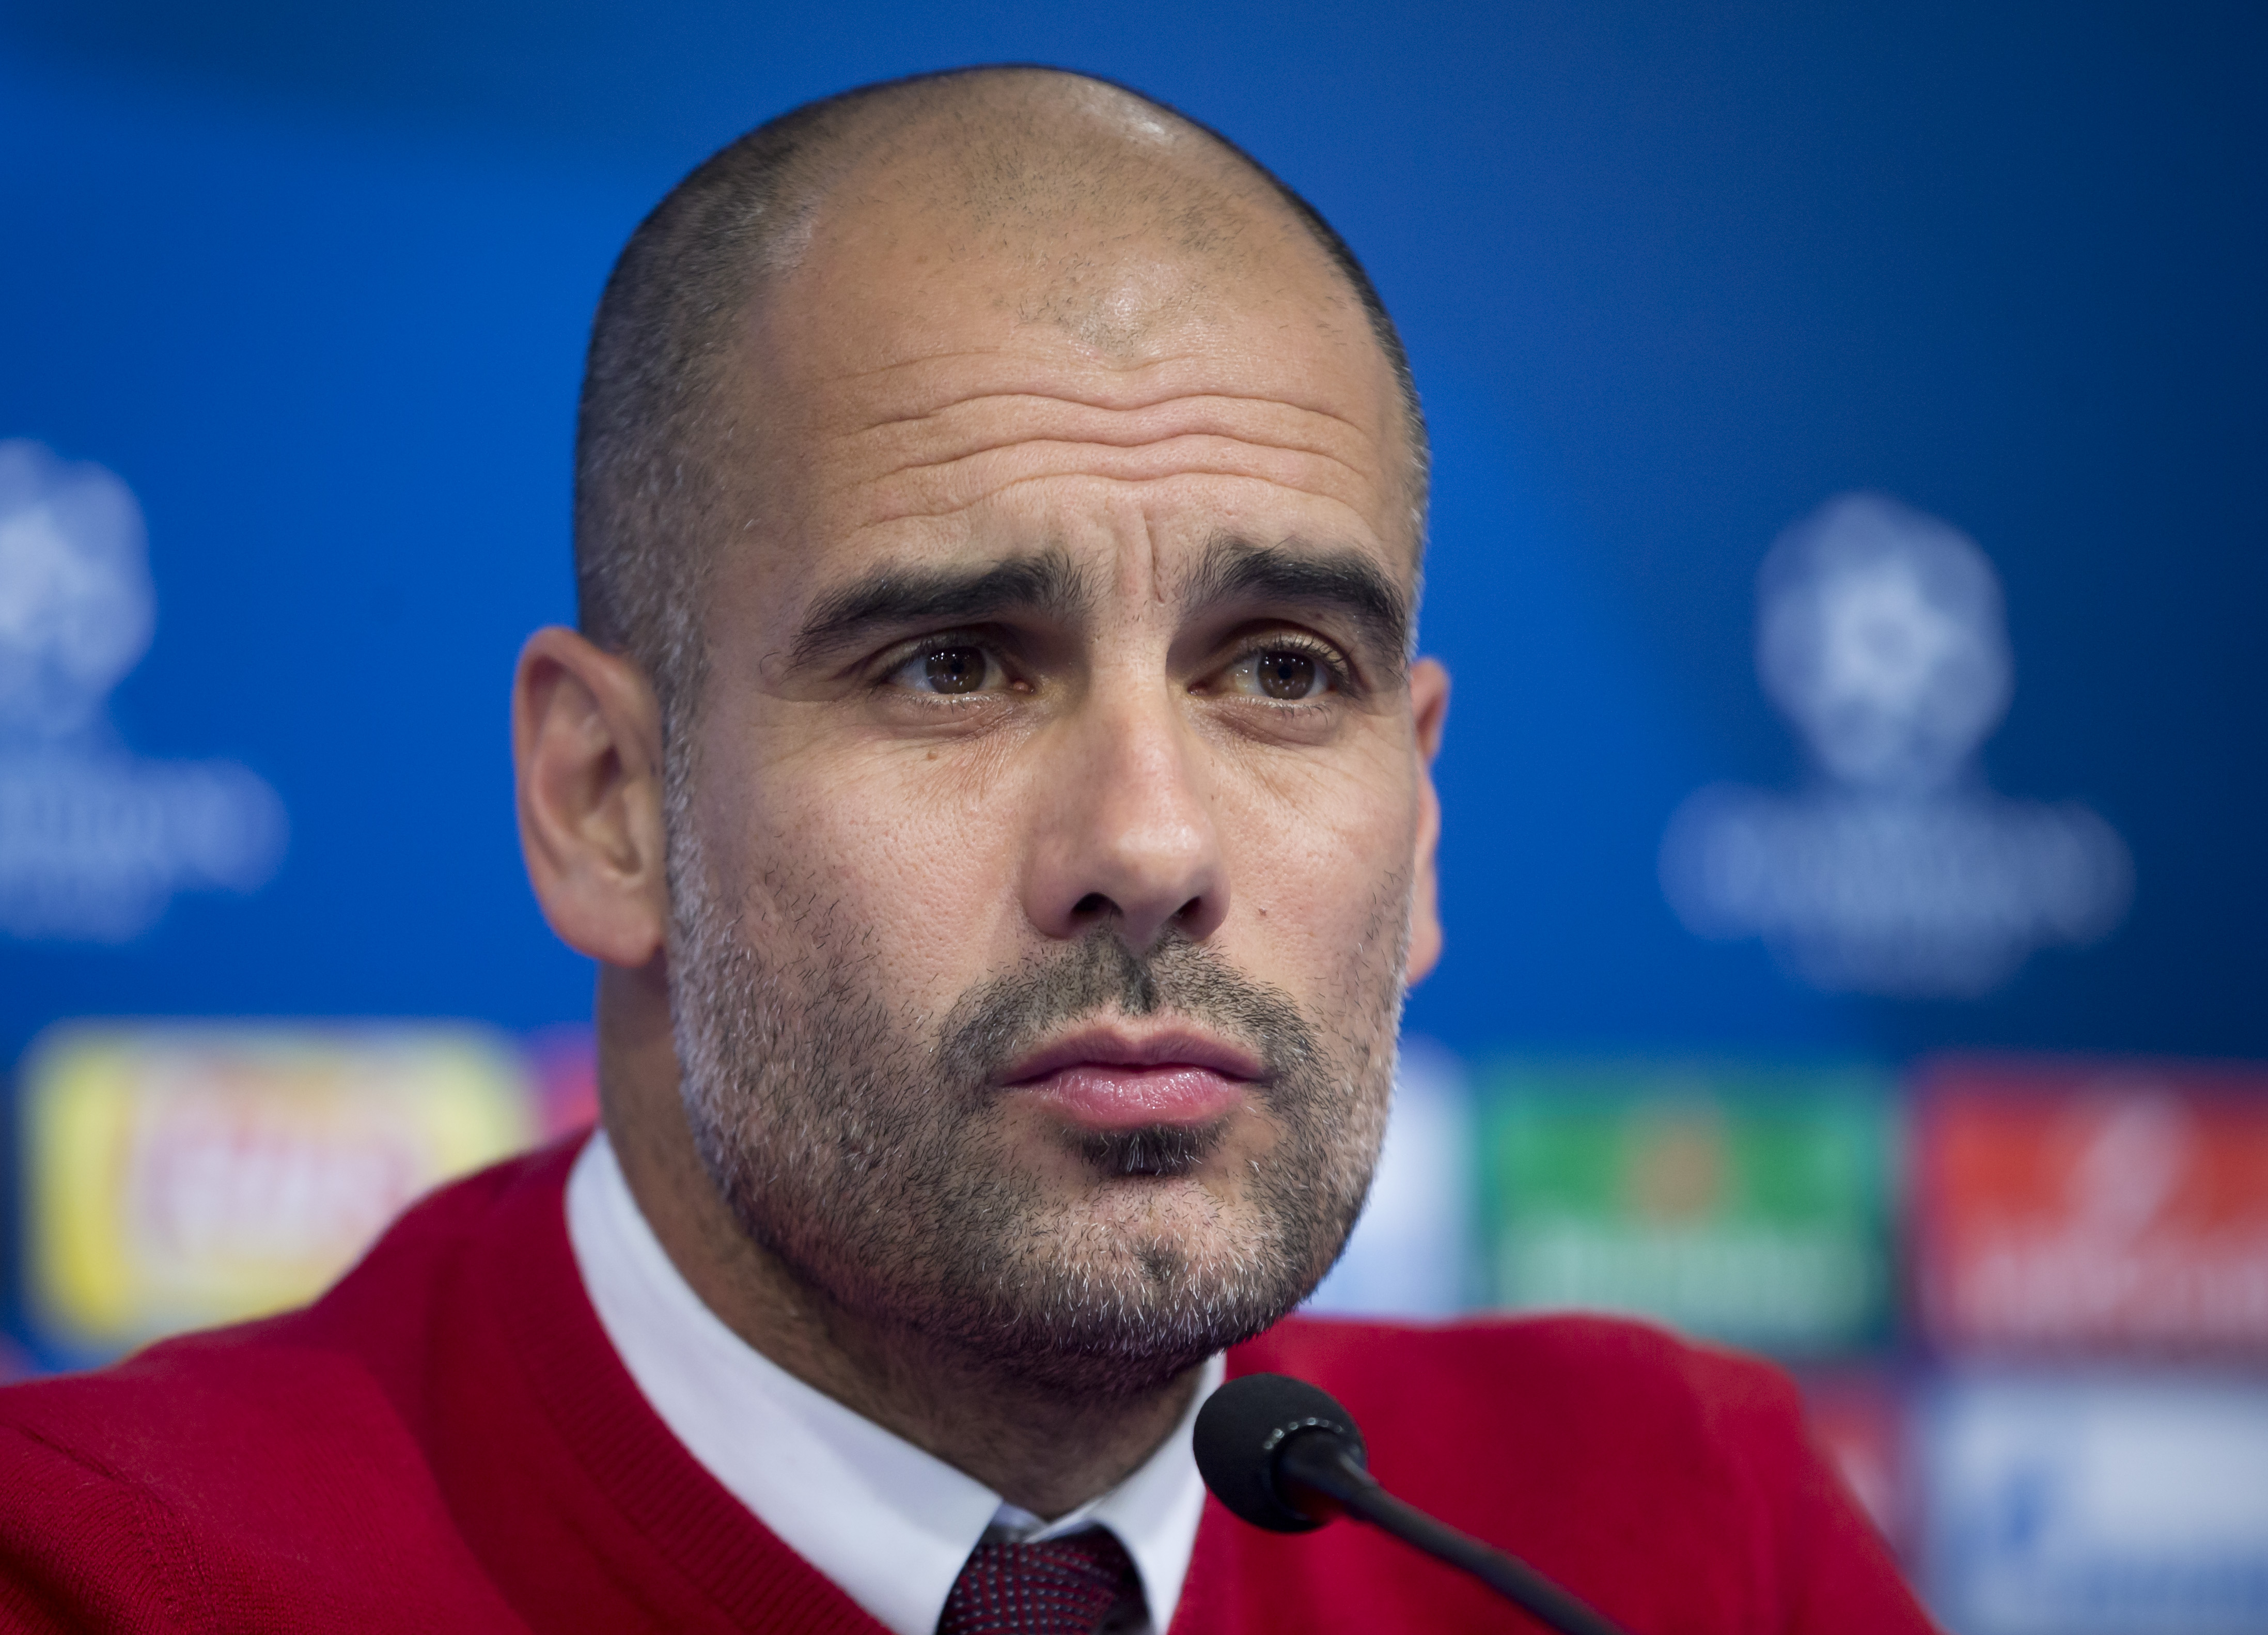 Bayern's head coach Pep Guardiola listens to a question during a press conference ahead of the Champions League Group F soccer match between Dinamo Zagreb and Bayern Munich, in Zagreb, Croatia, Tuesday, December 8, 2015. Photo: AP